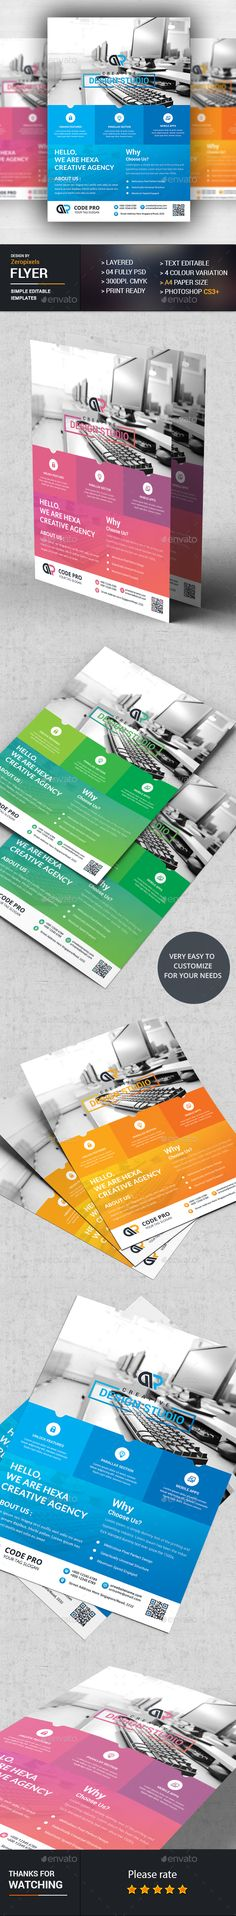 Corporate Flyer Template PSD. Download here: http://graphicriver.net/item/corporate-flyer/16913970?ref=ksioks